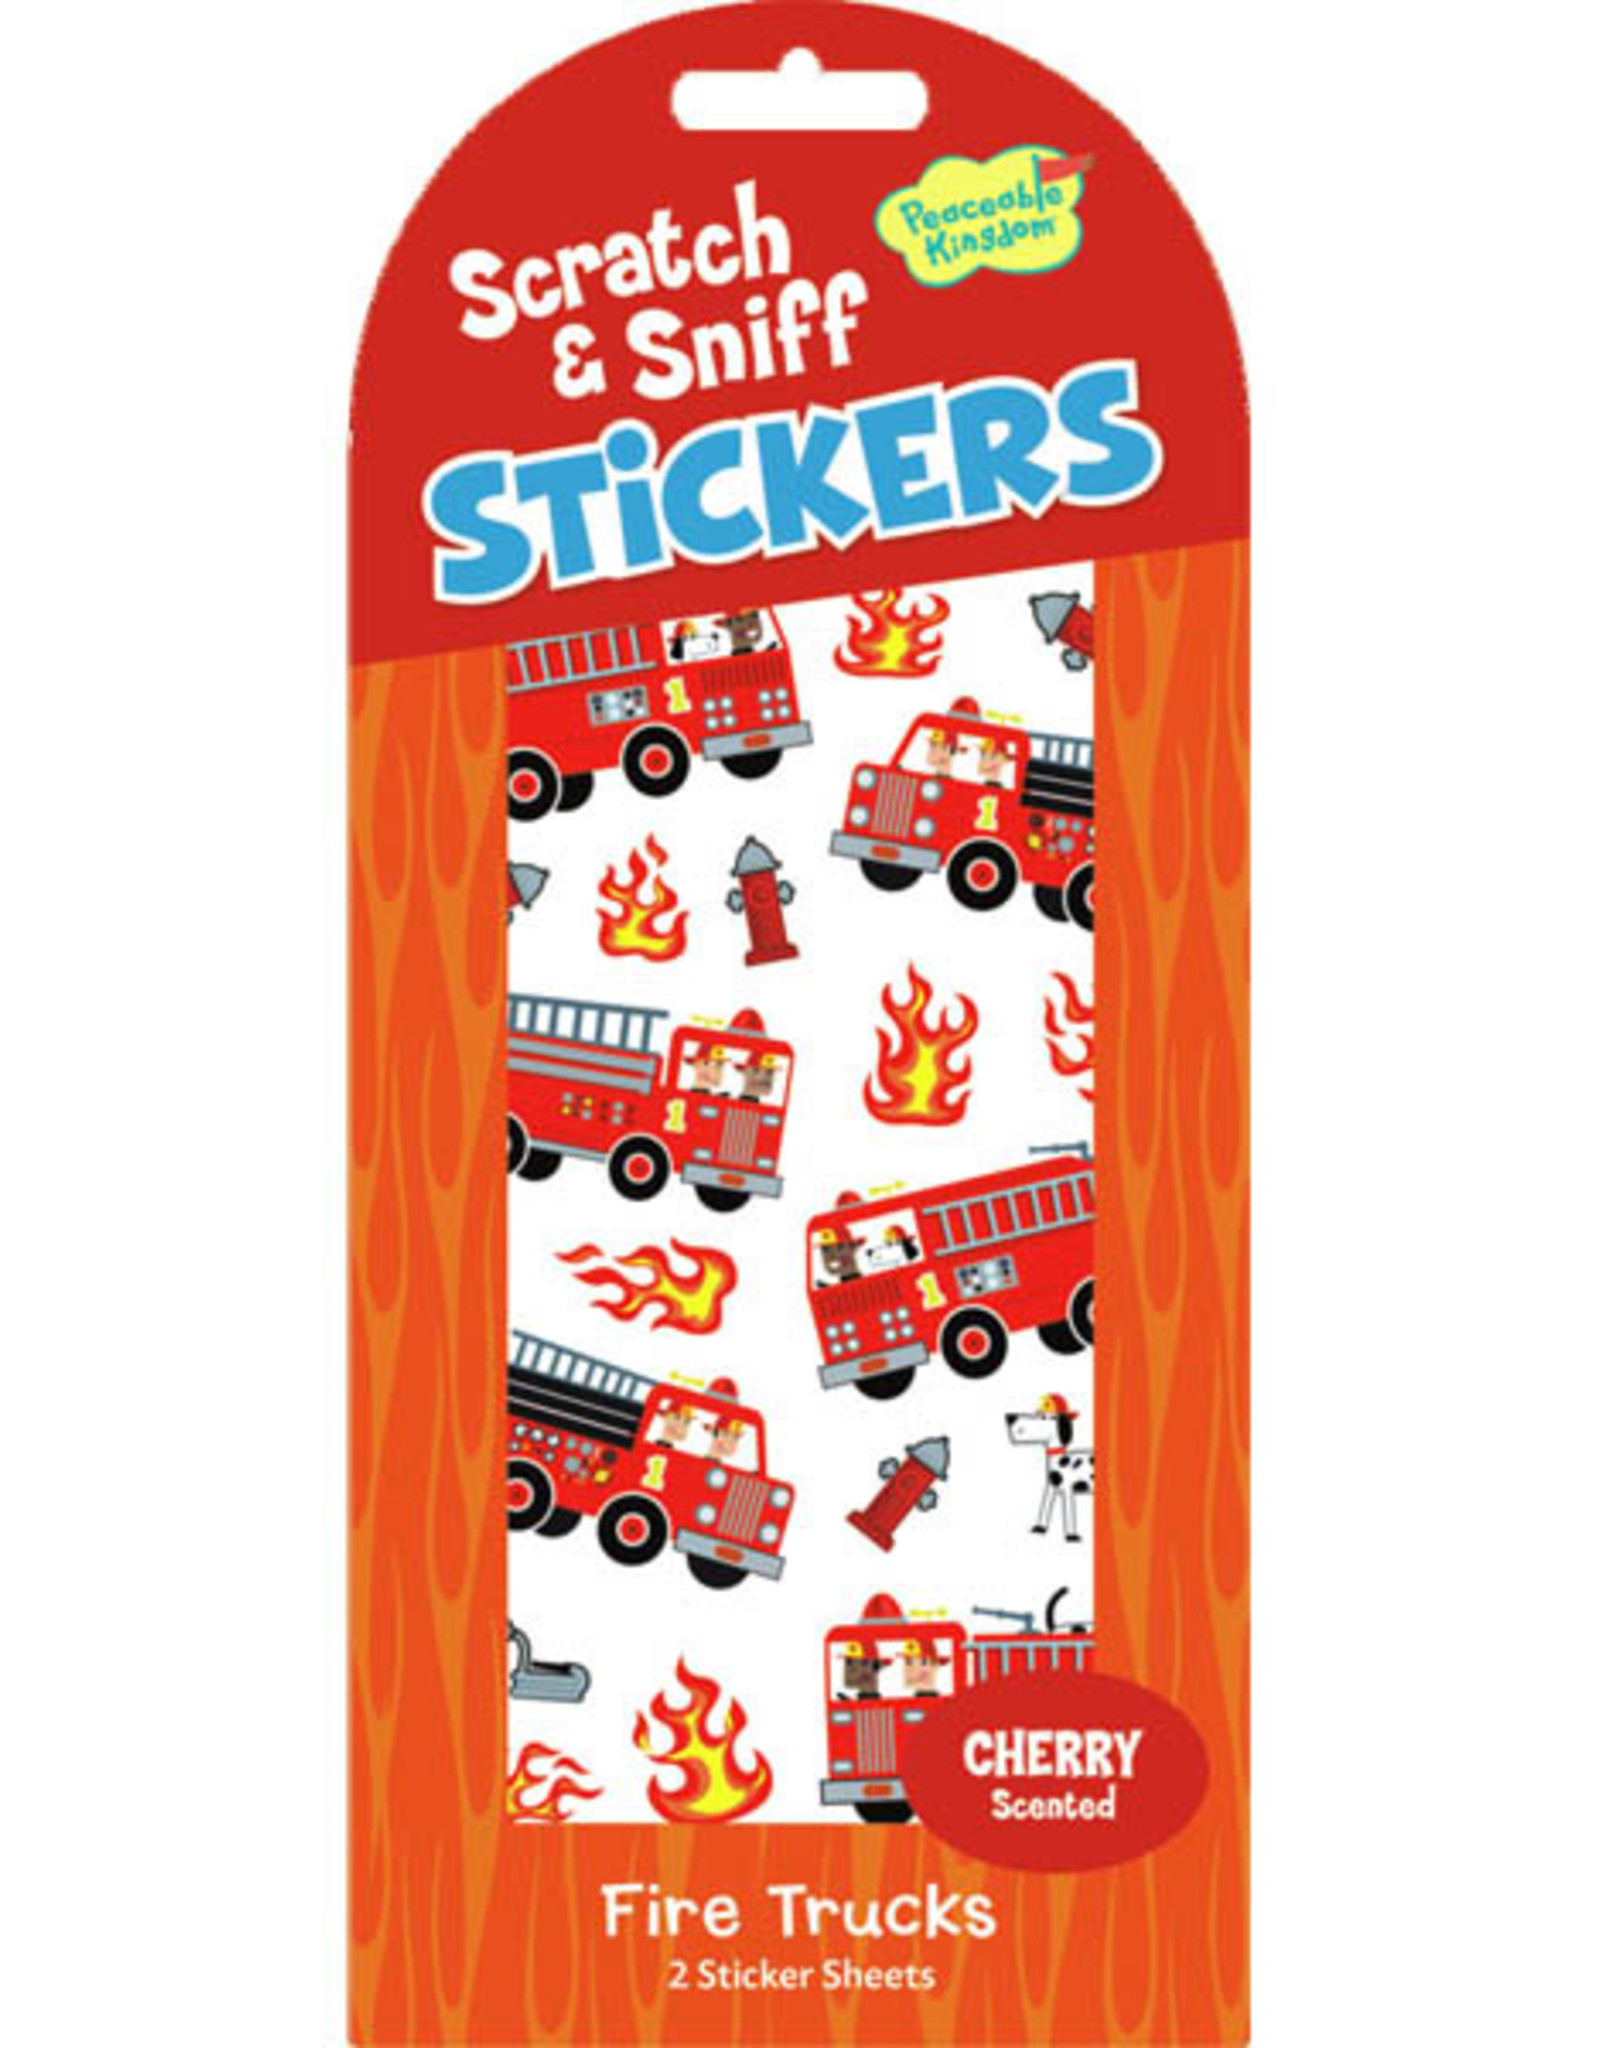 Peaceable Kingdom Cherry Fire Trucks Scratch and Sniff Stickers